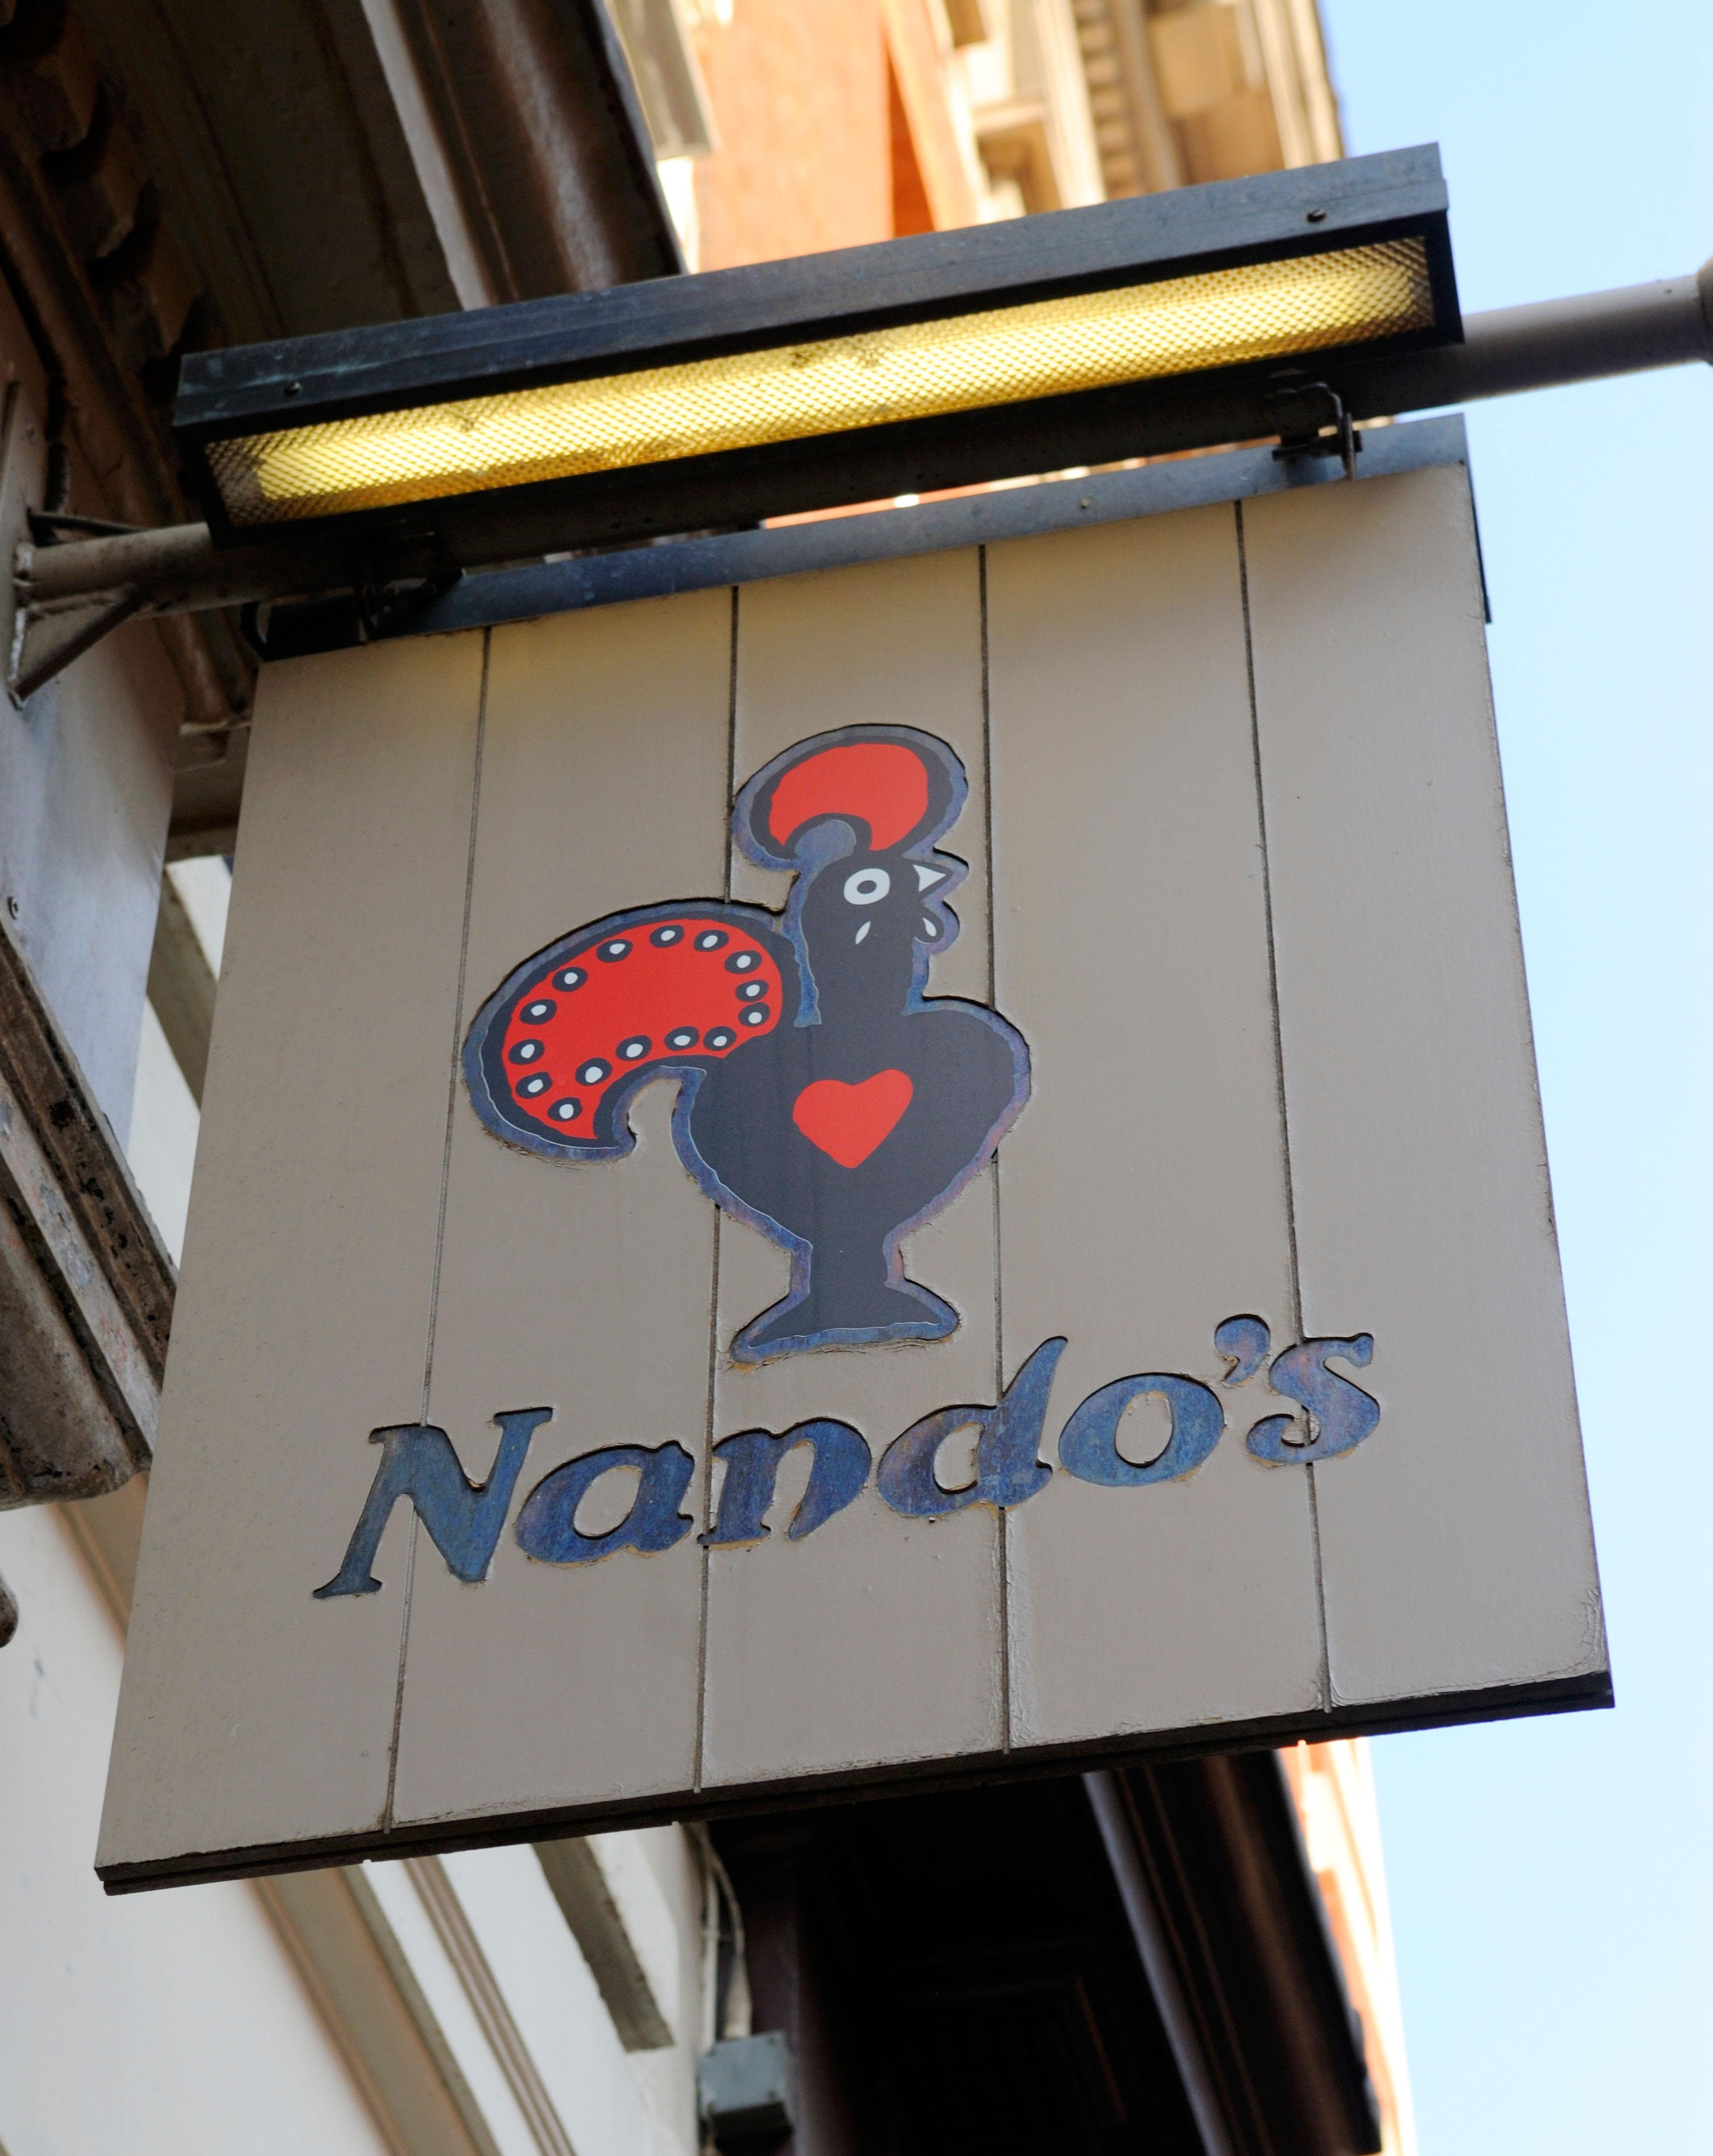 Nando's restaurant in Croydon forced to close after running out of CHICKEN… and customers are fuming